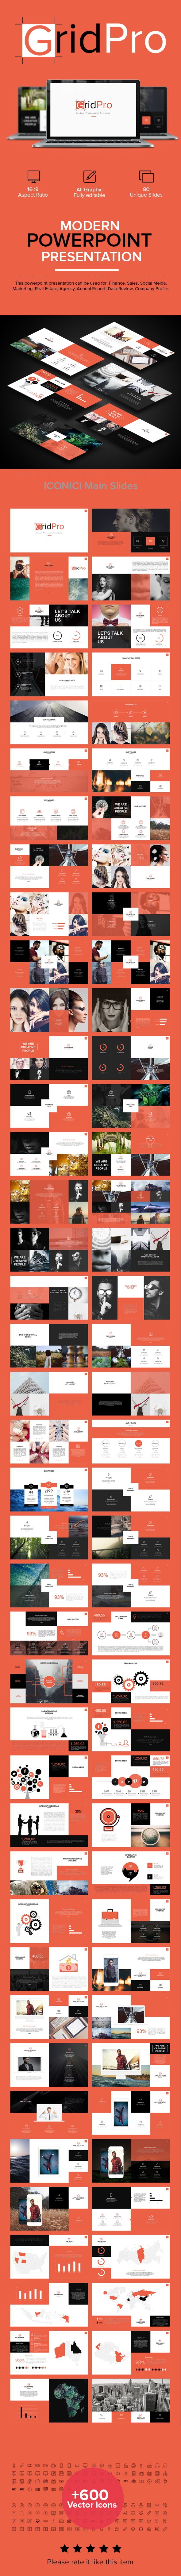 Grid pro powerpoint template by jkhnon graphicriver grid pro powerpoint template creative powerpoint templates alramifo Choice Image